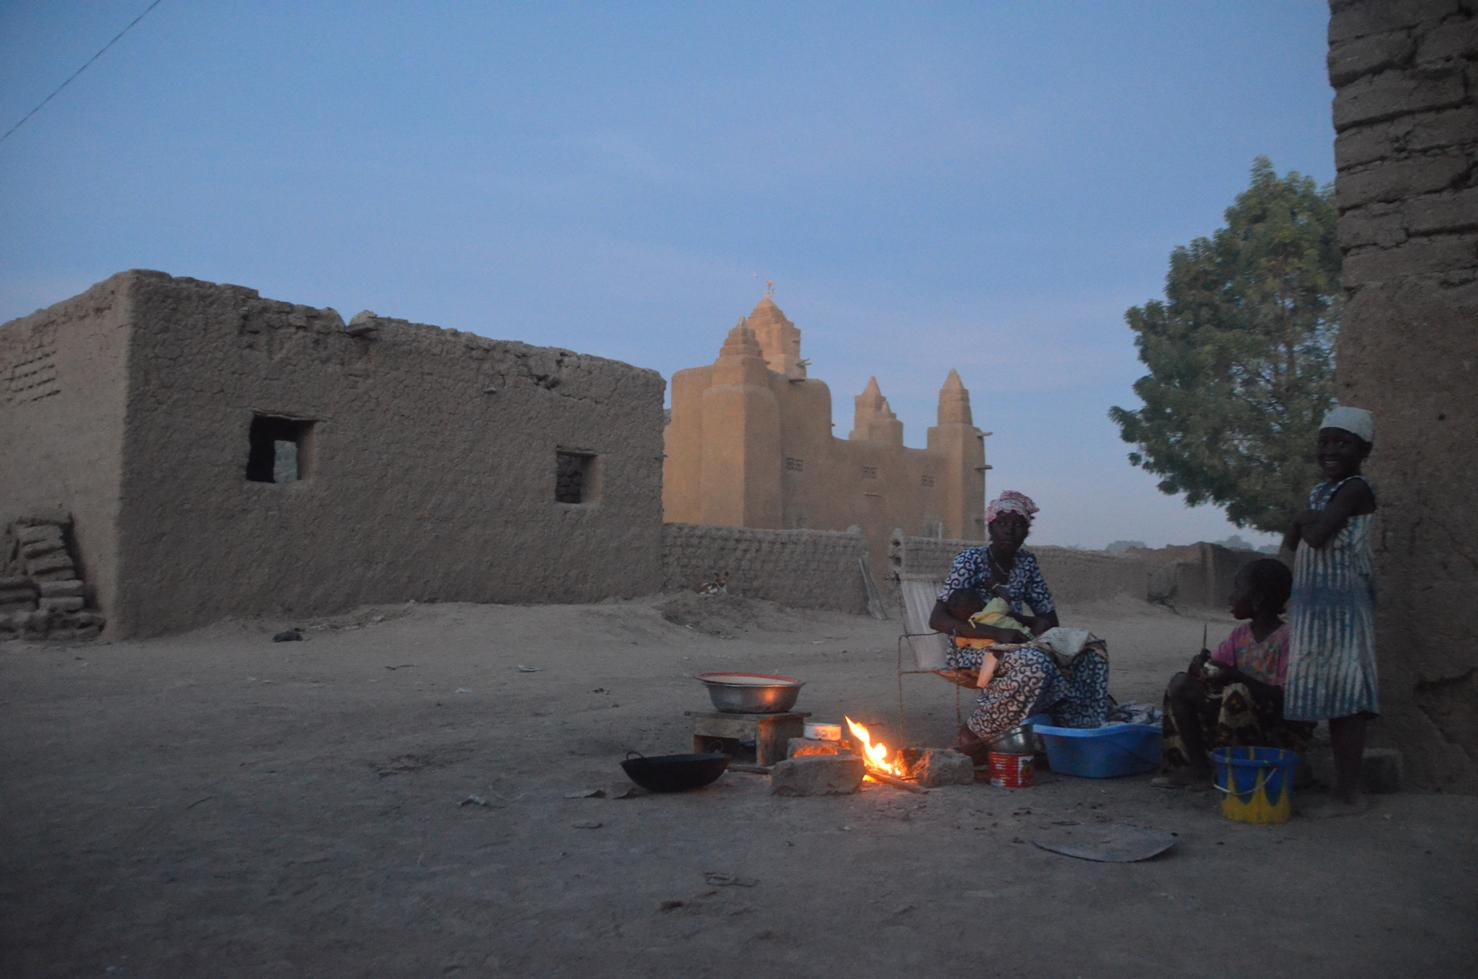 Life in Diabaly, in Segou region, central Mali is gradually returning to normal following fighting between Islamist groups and French troops. (Jan 2013)